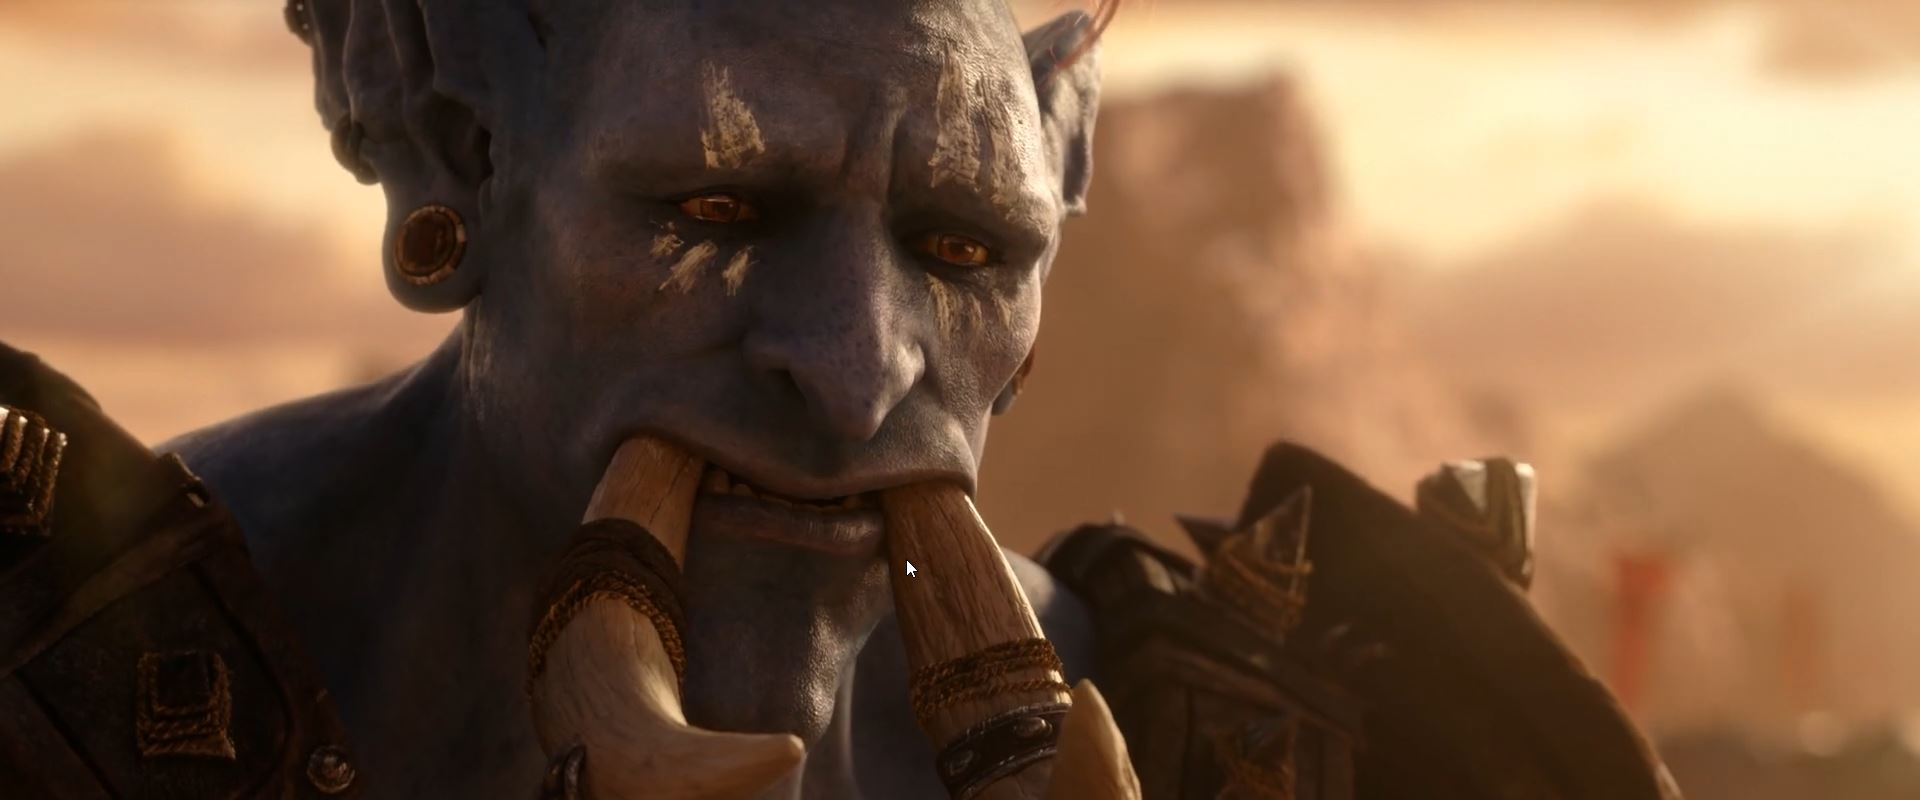 World of Warcraft War Campaign Cinematic Finale